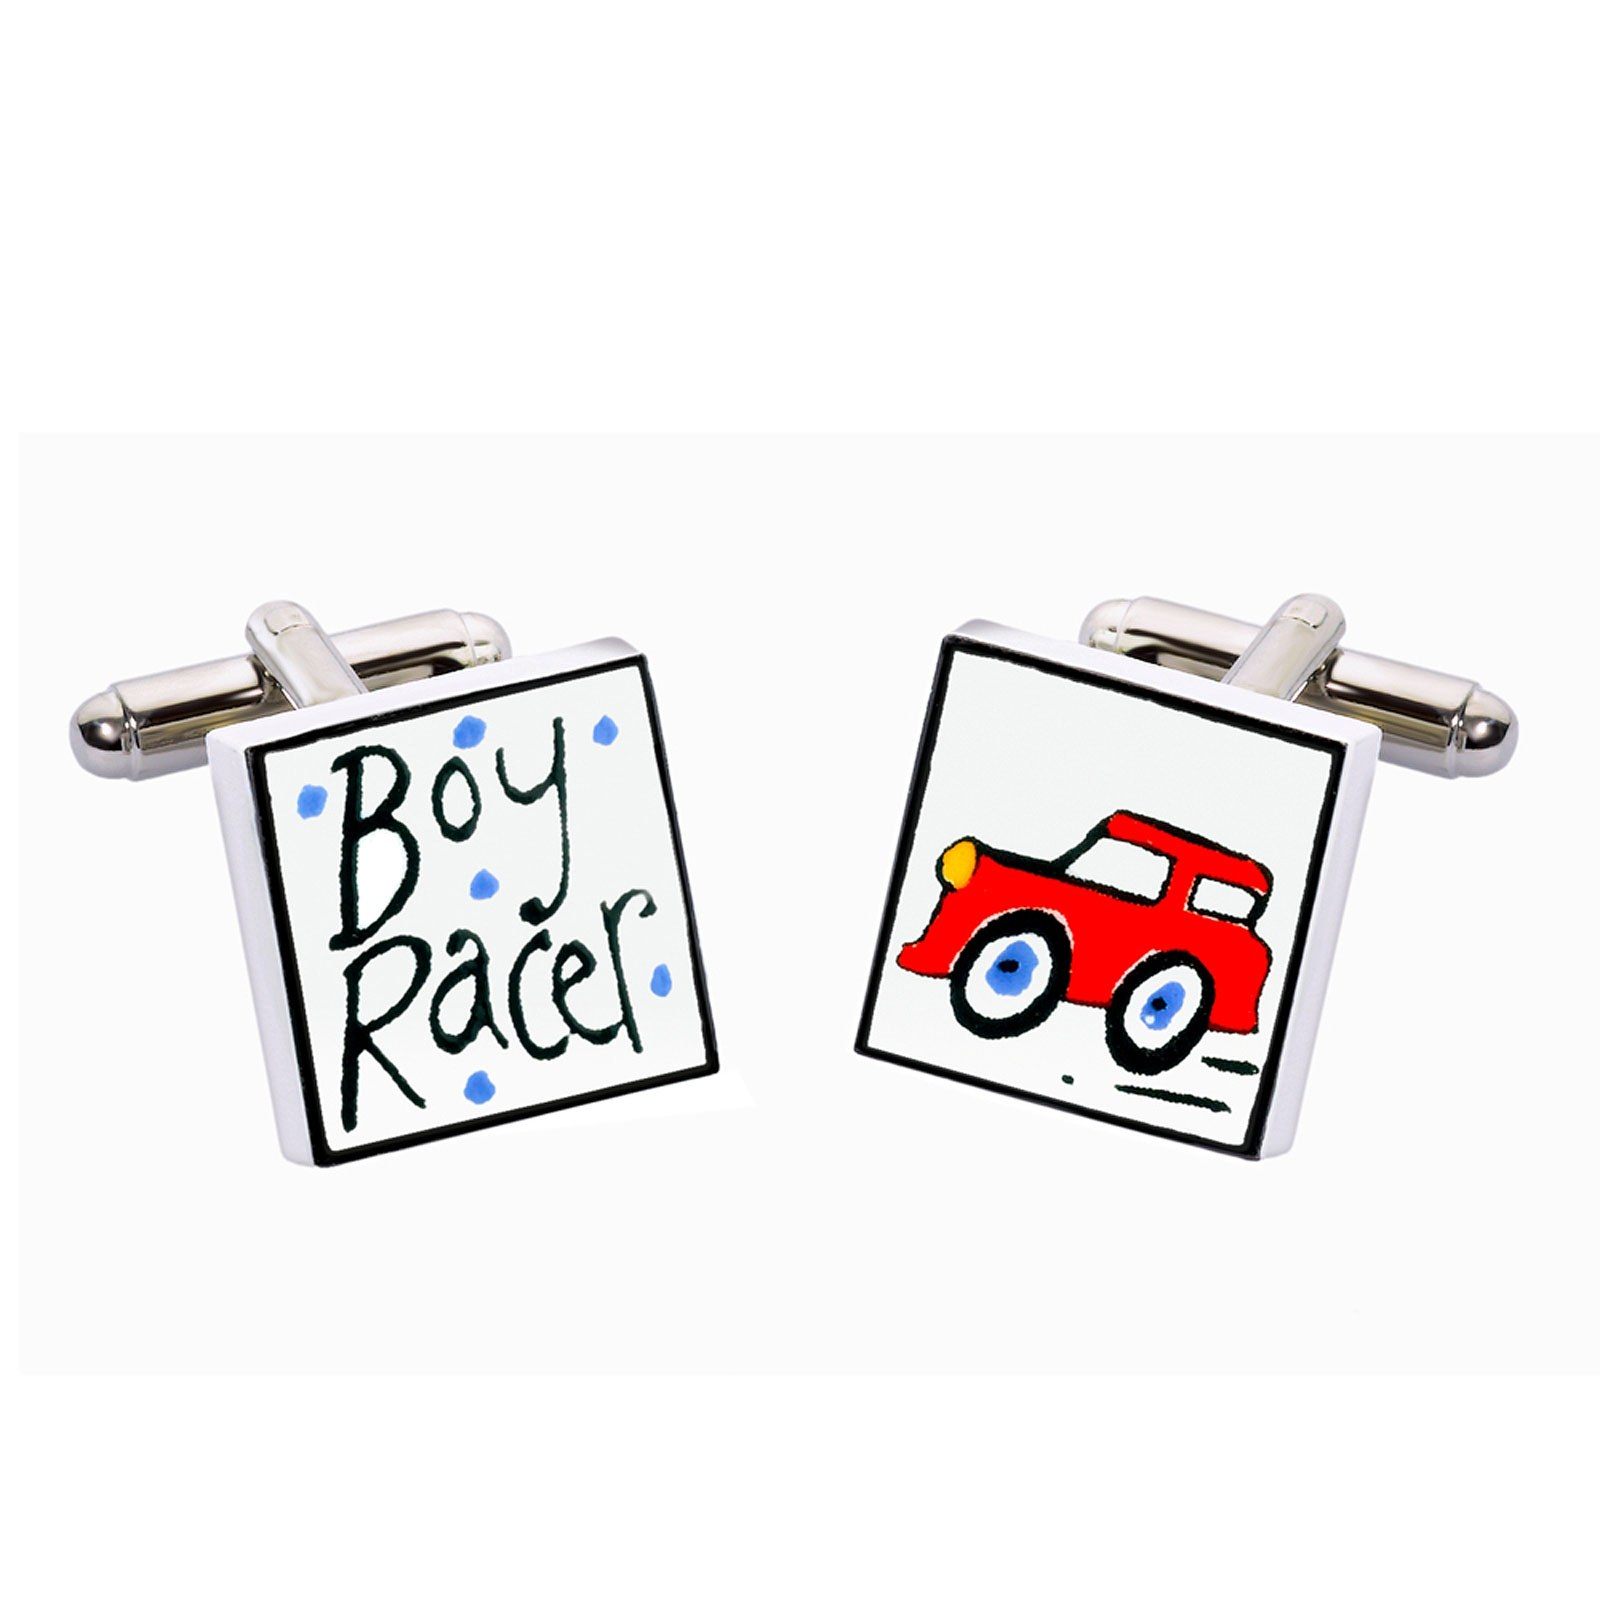 Boy Racer Ceramic Cufflinks